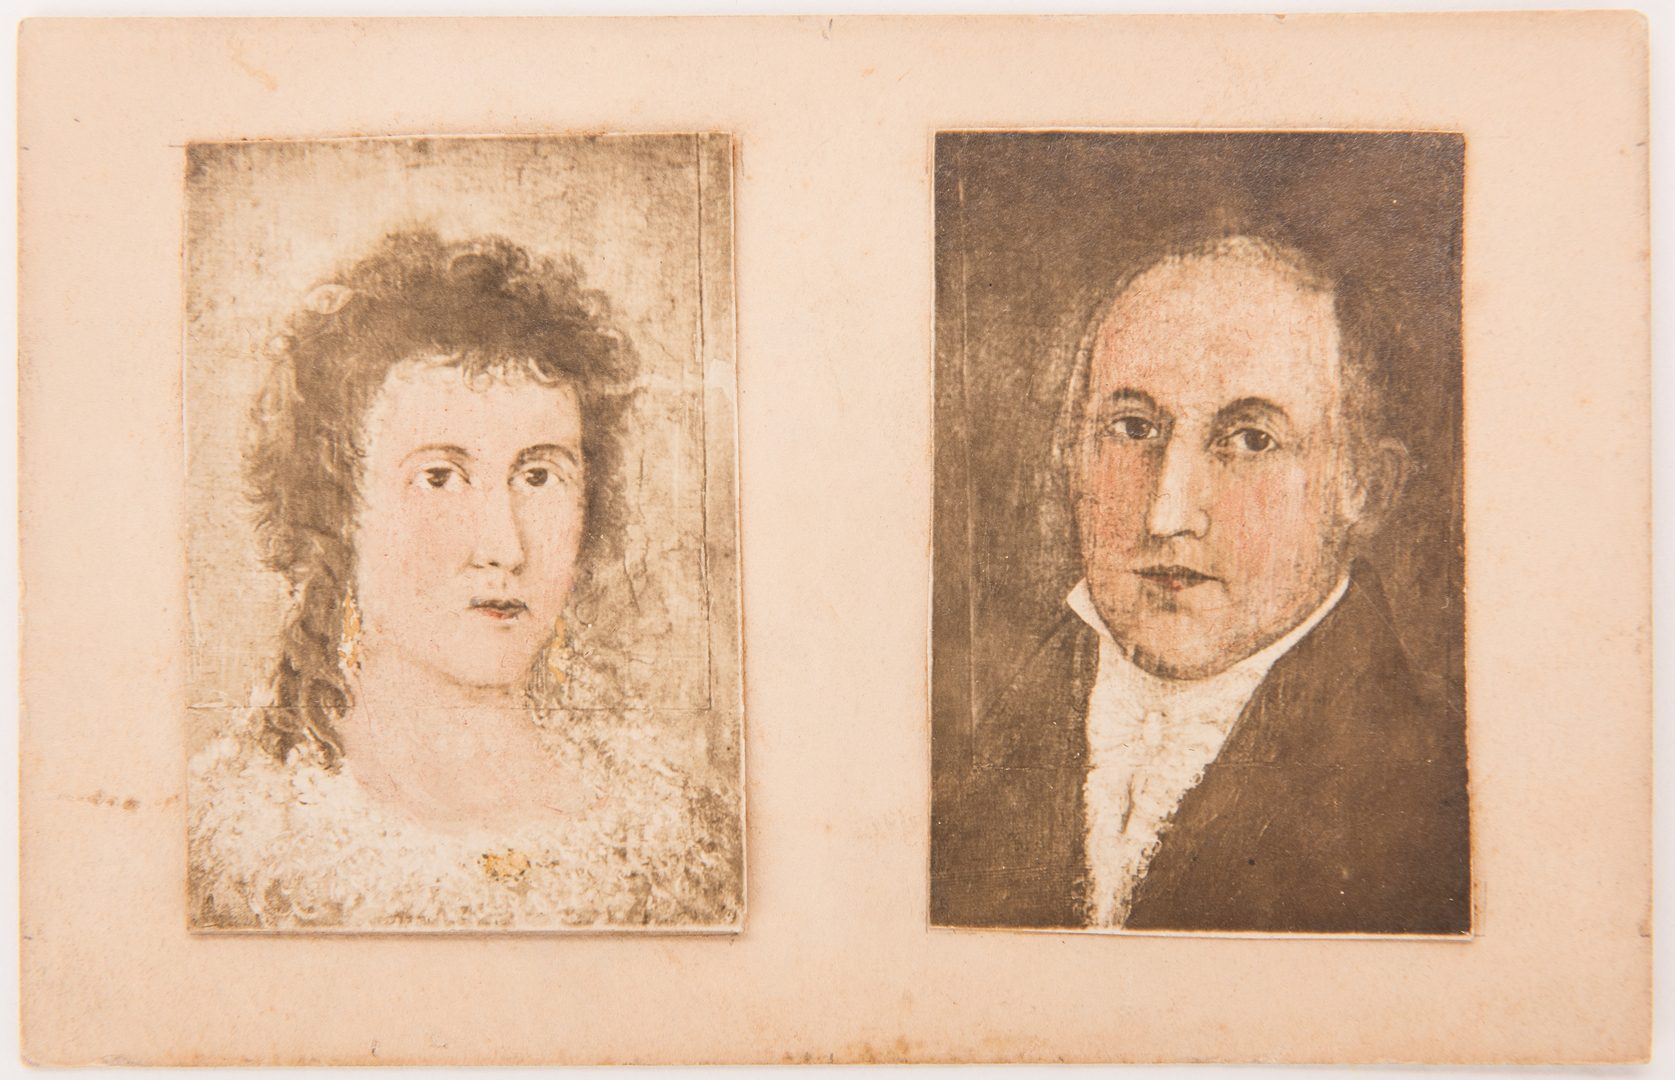 Lot 61: Boyd Portrait and Pair of Phototypes and The Launching Print, 4 items